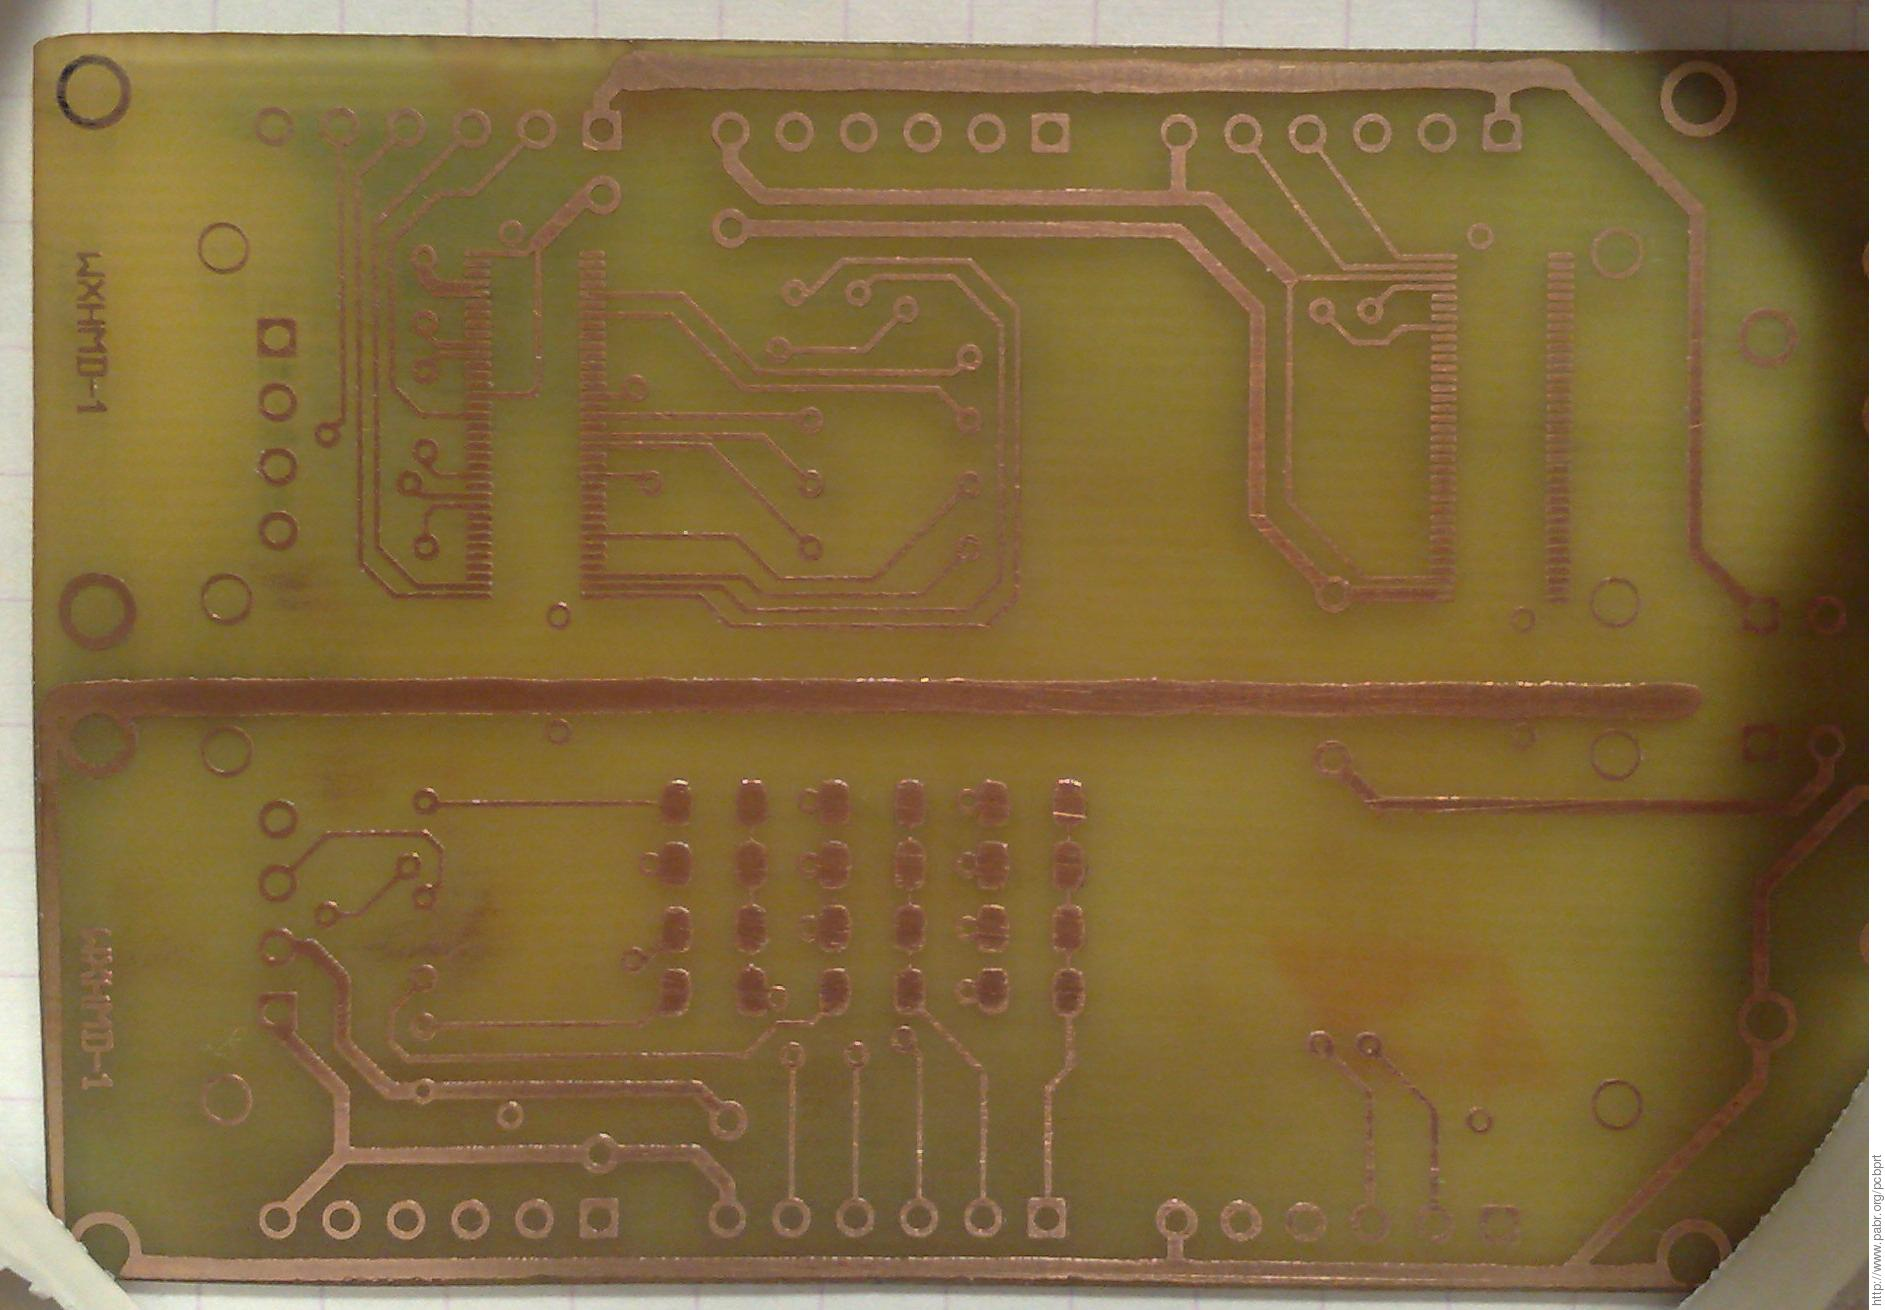 Pcbprt Experiments In Inkjet Pcb Printing Picture Of How To Waterproof Circuit Boards Epoxy Method 38 Is Cuprous Oxide The Best Media Figure 6 First Production